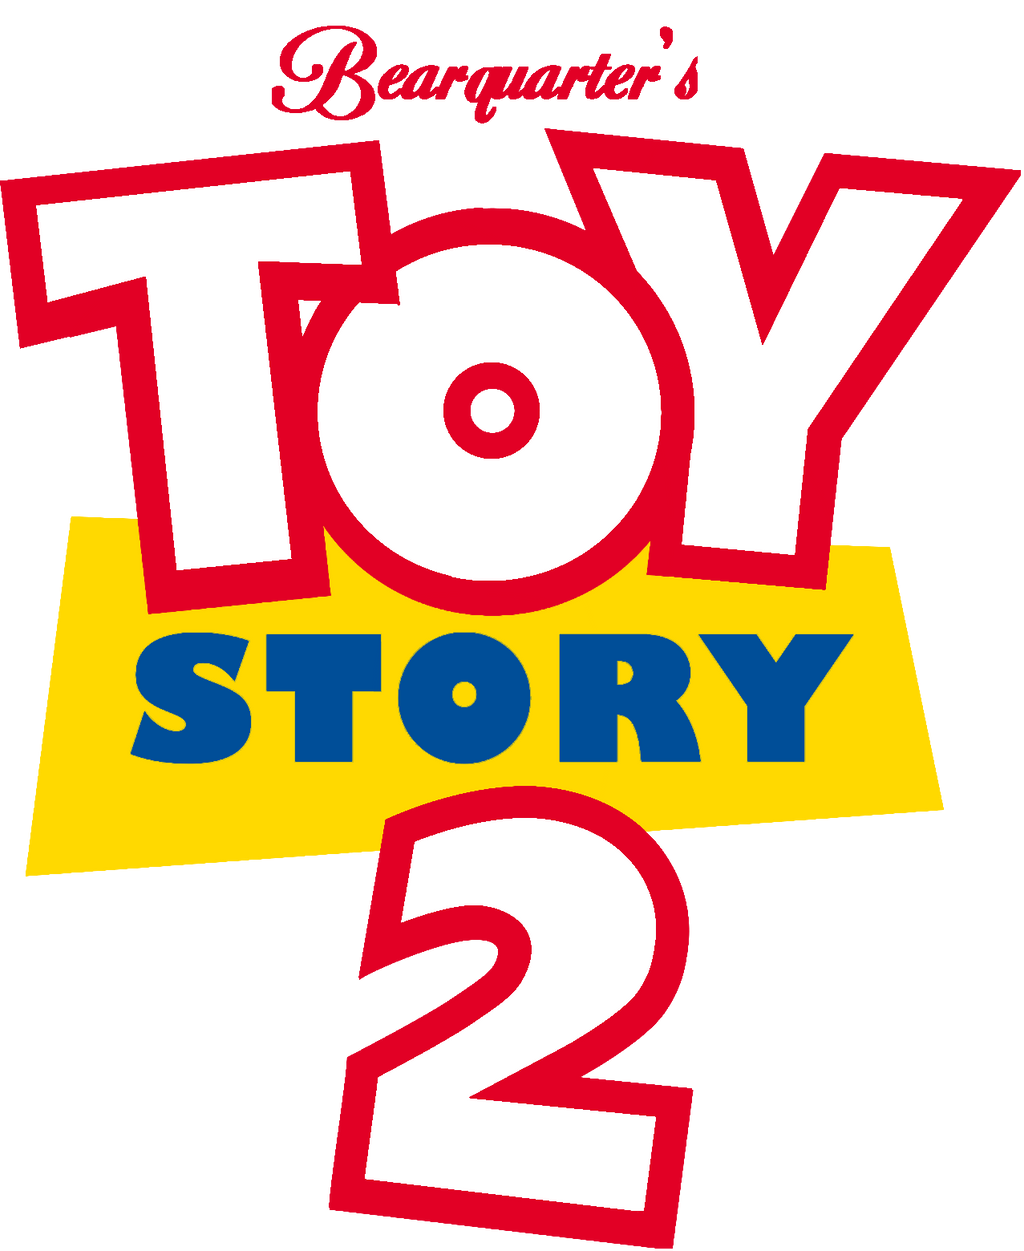 bearquarters toy story 2 logo 2016 by bearquarter2008